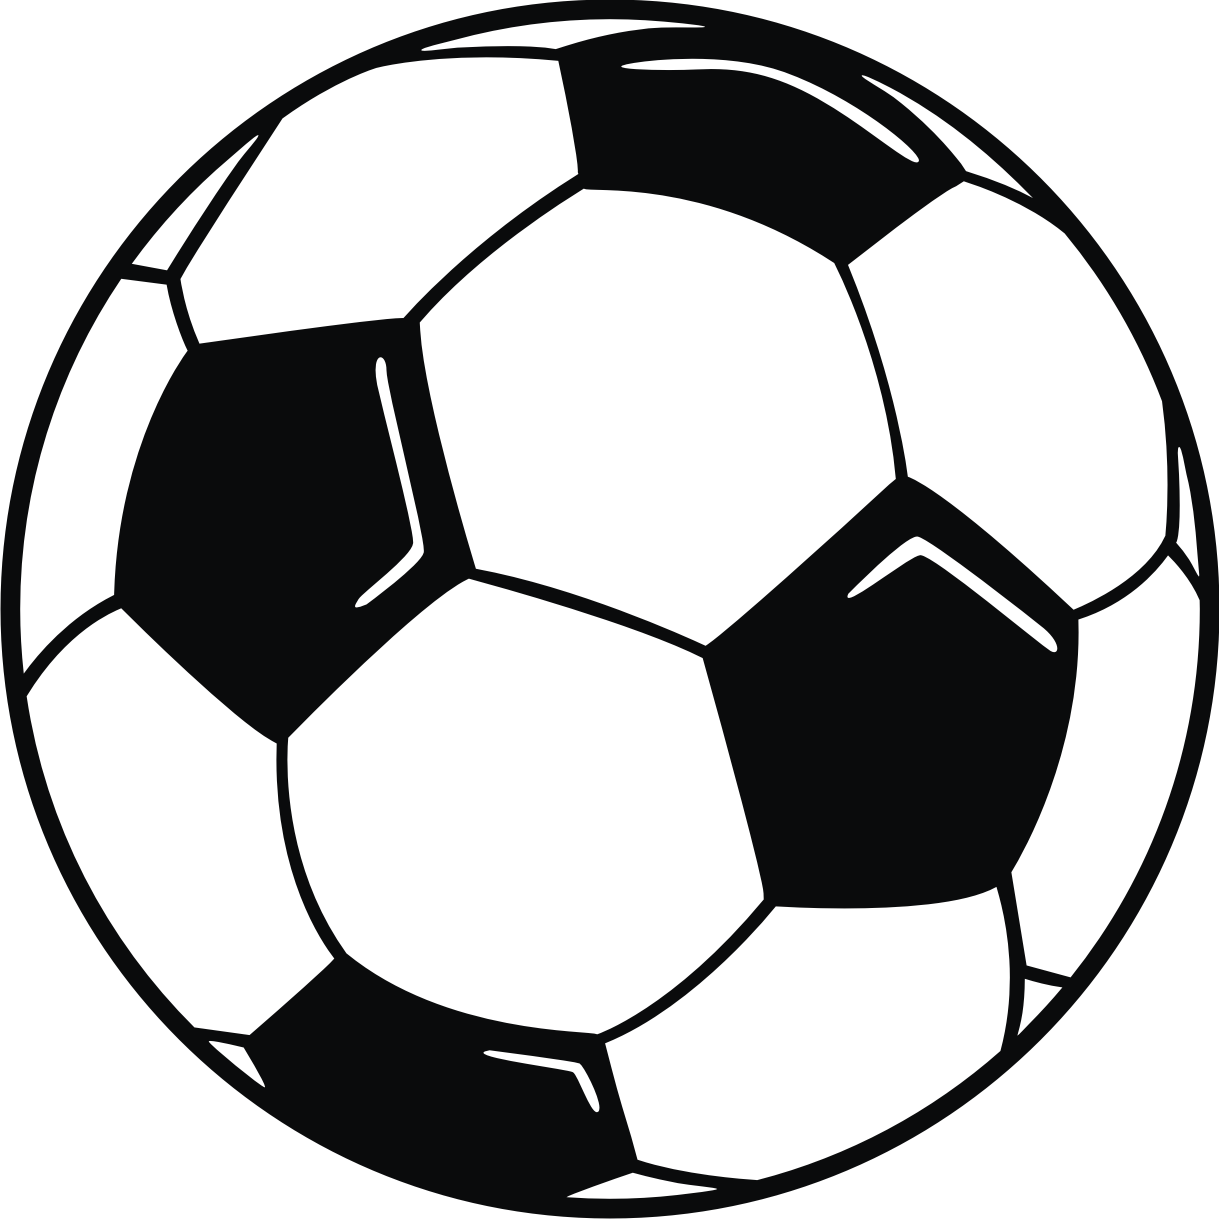 Clip Art Soccer Ball With Hi Lights Soccer Ball Soccer Pictures Soccer Art